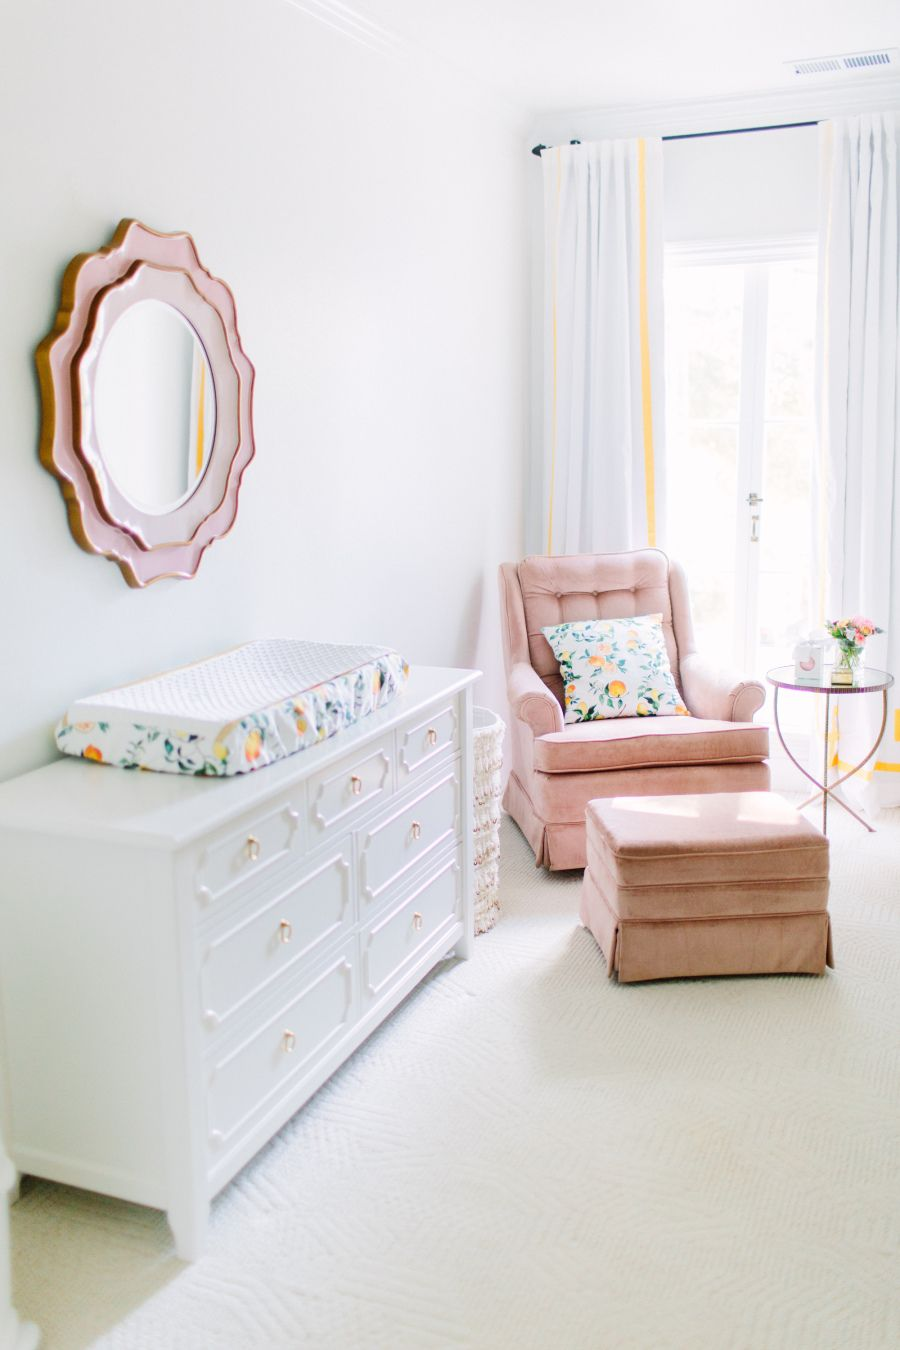 Sophisticated Sweet Nursery + Designer Tips to Stay on Budget: Photography: Meg Perotti - http://www.megperotti.com/